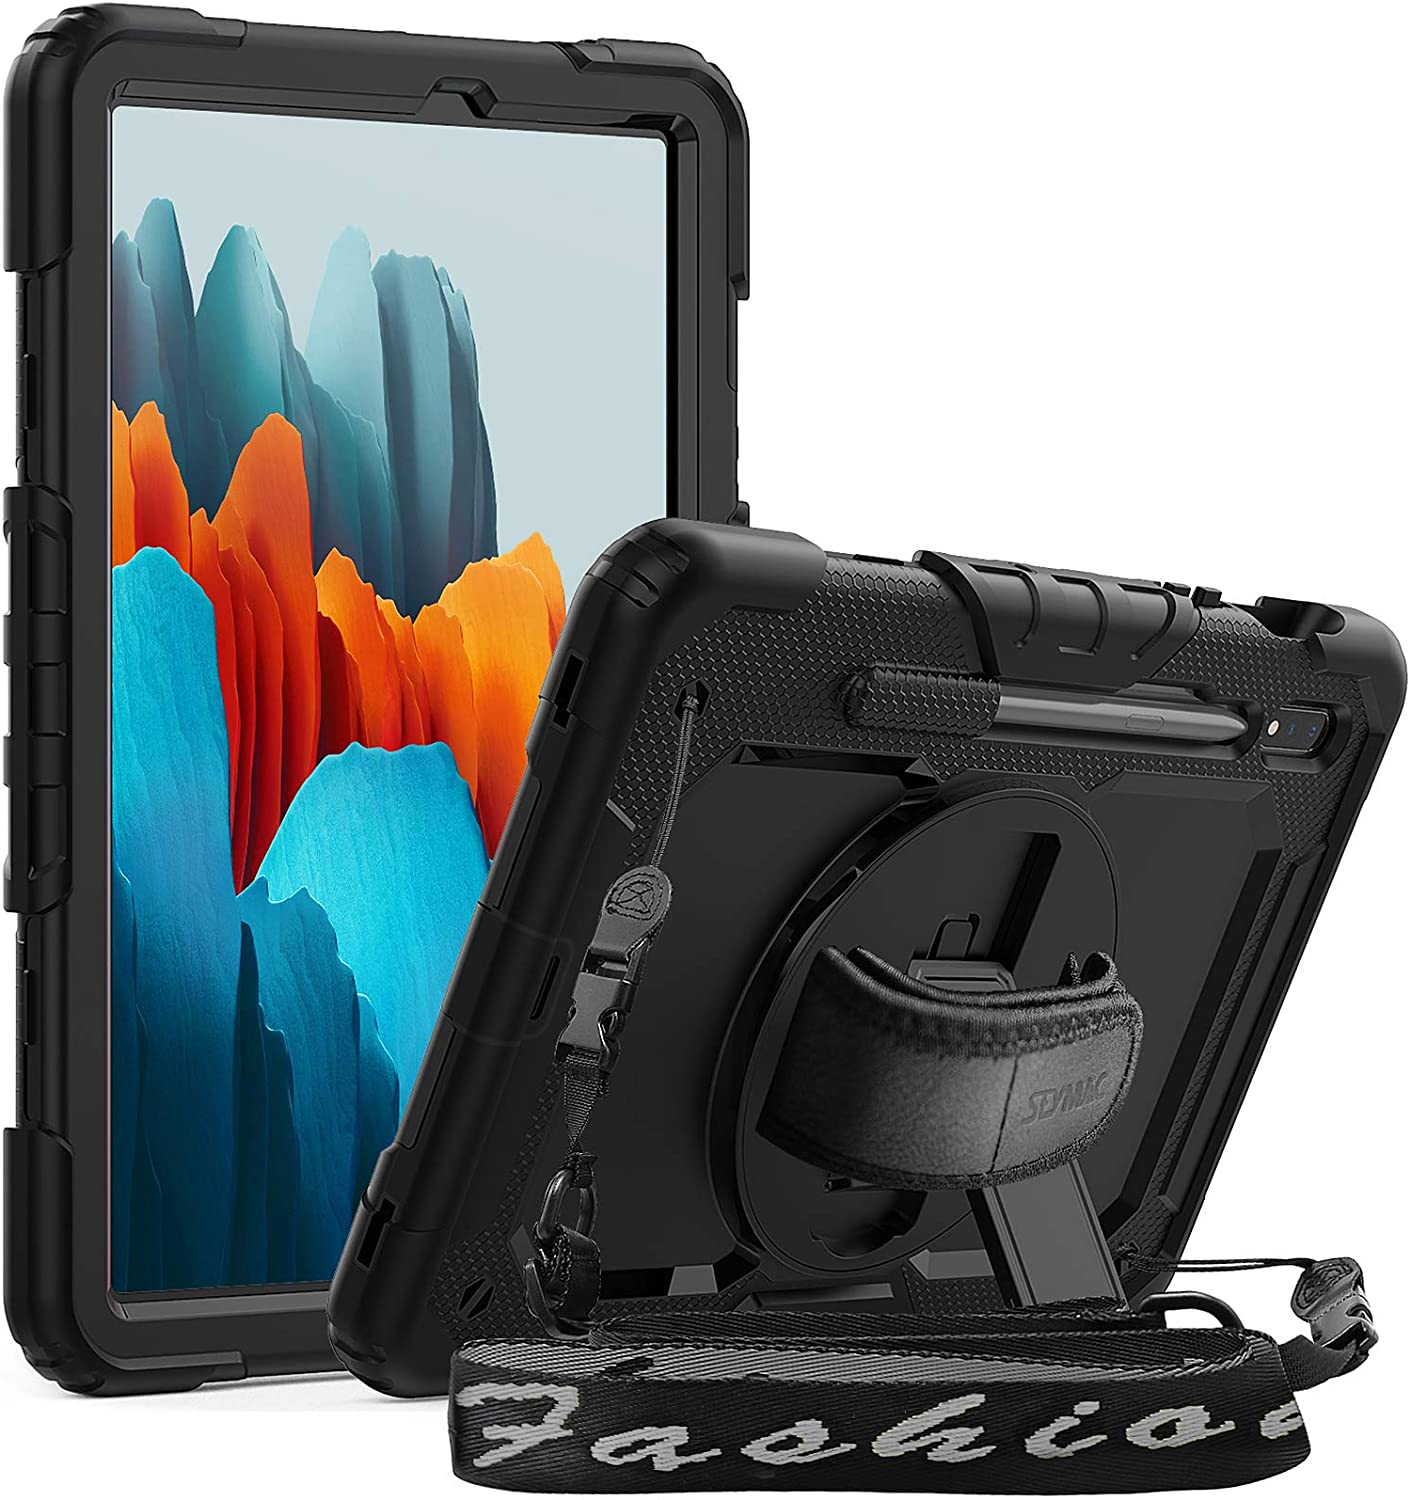 SEYMAC Case for Samsung Galaxy Tab S7 11 Inch 2020,SM-T870/T875 Case, Full Protection Shockproof Stand Case [360 Rotatable Hand Strap/Screen Protector/Pen Holder] Cover for Galaxy Tab S7 11 2020,Black